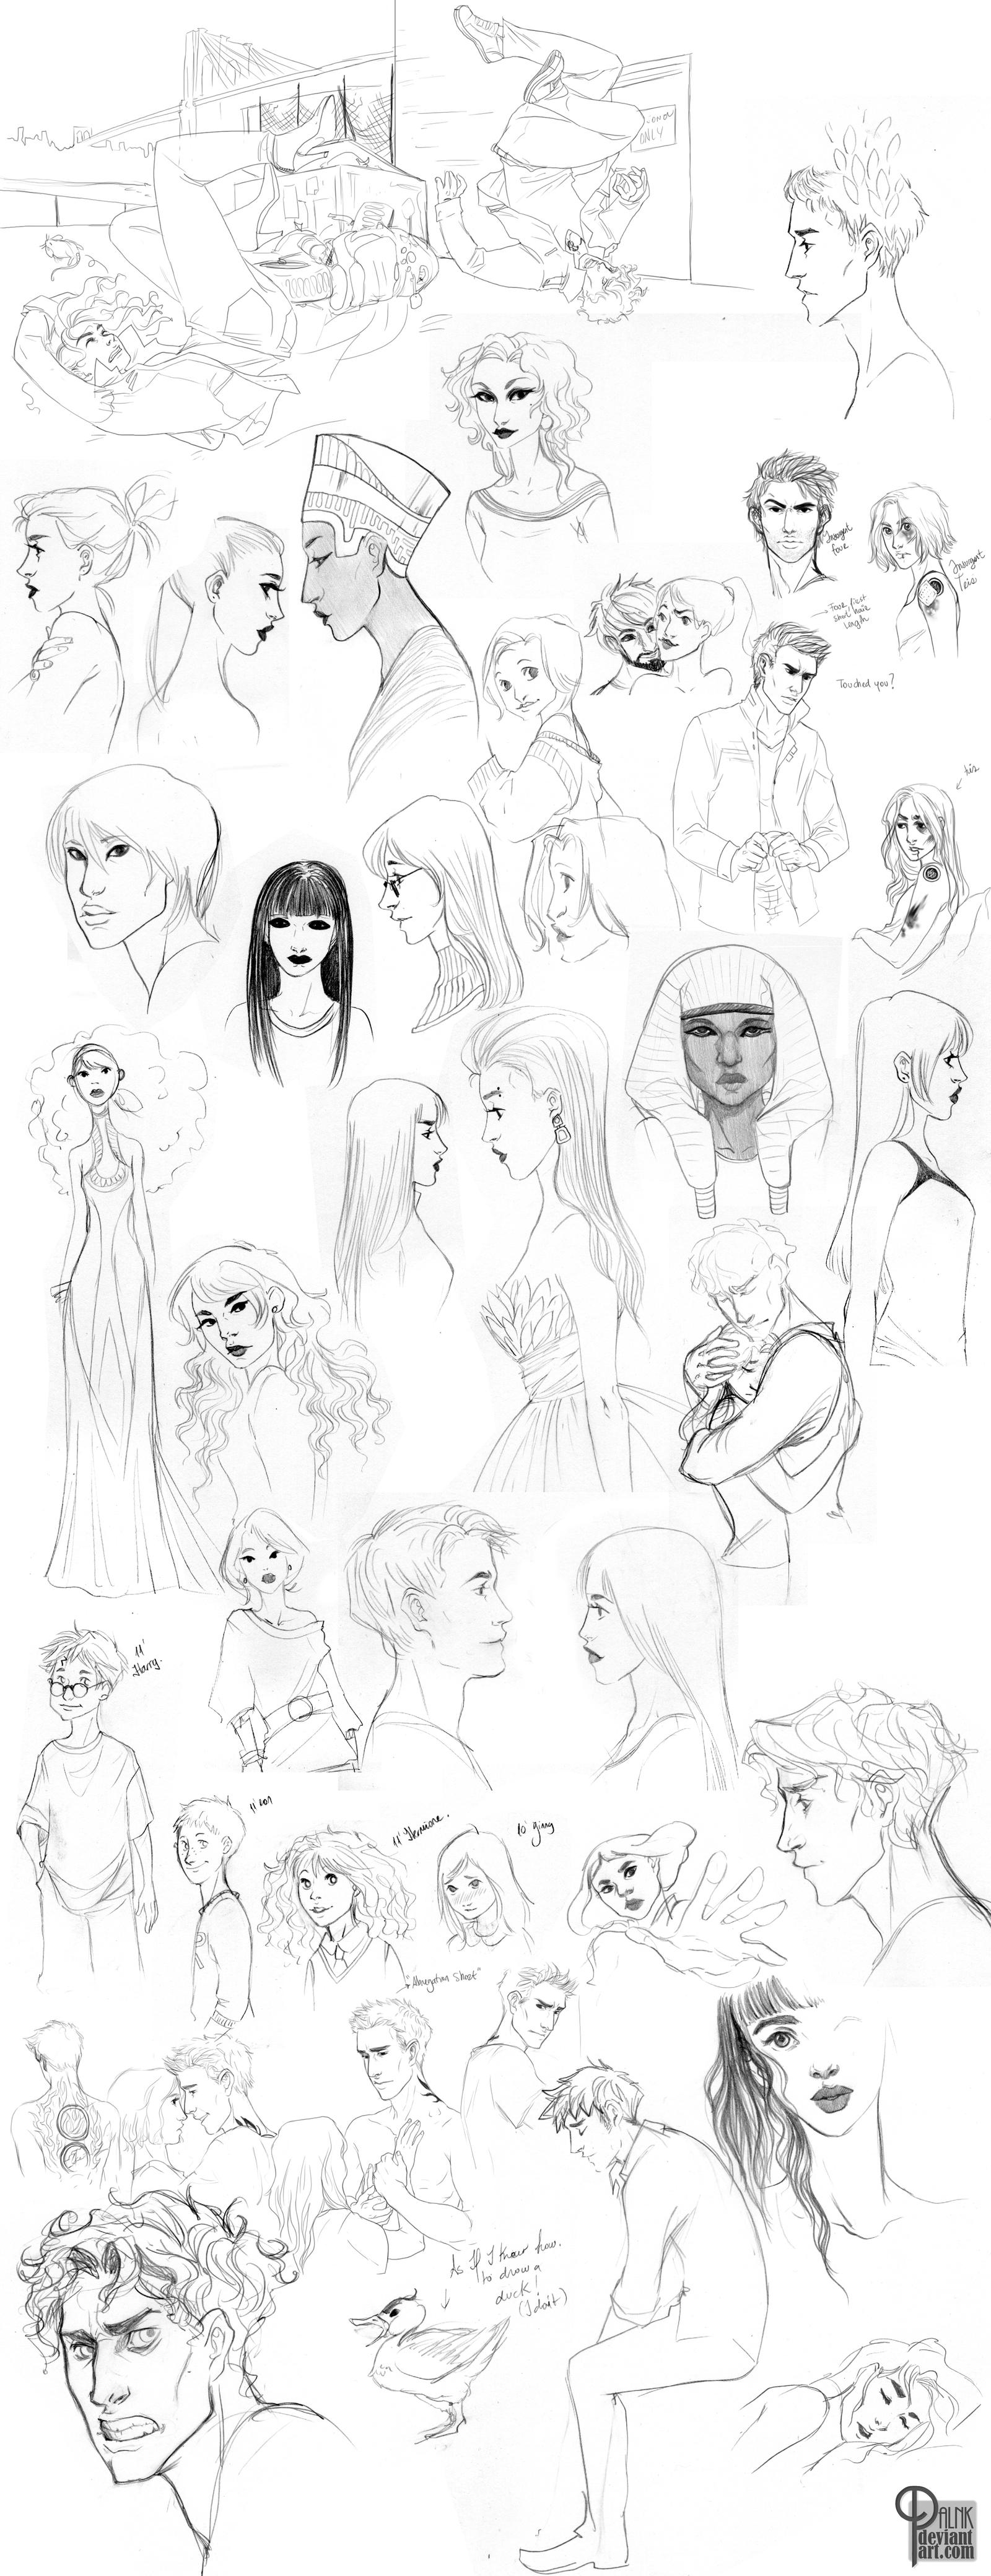 Sketchdump by palnk